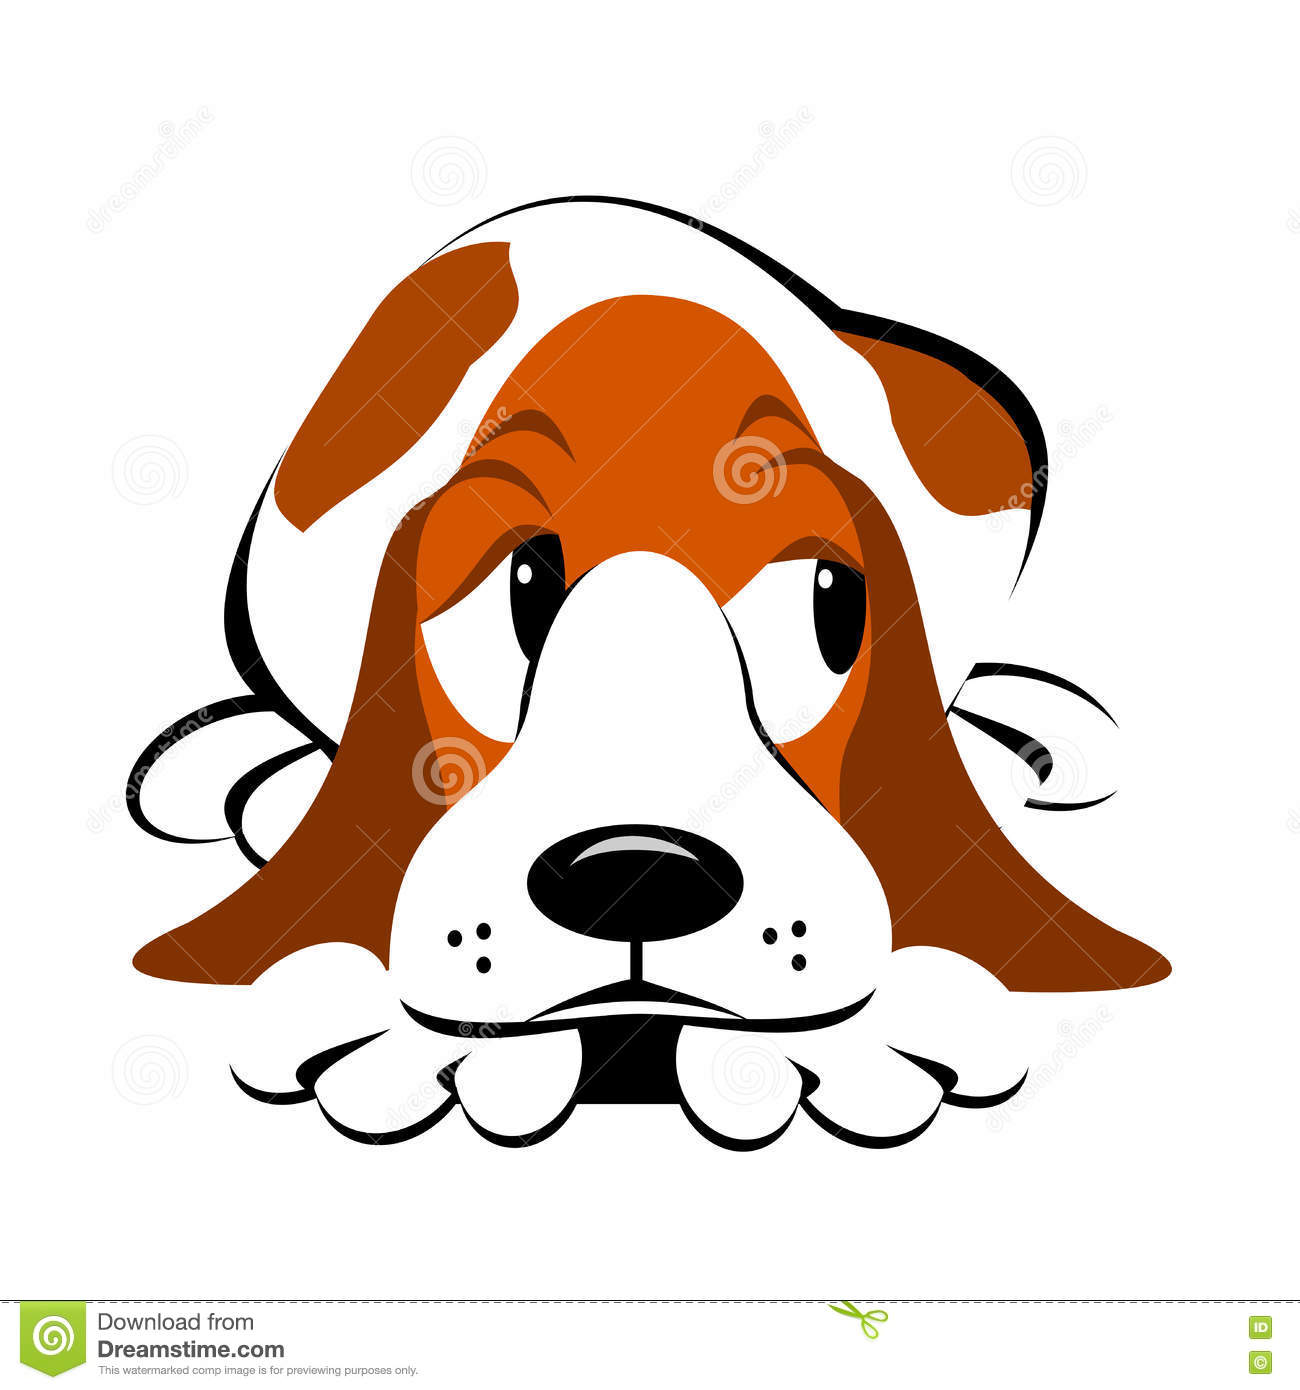 Dog clipart stock vector free stock Guilty Dog Clipart Stock Vector - Image: 77008121 vector free stock